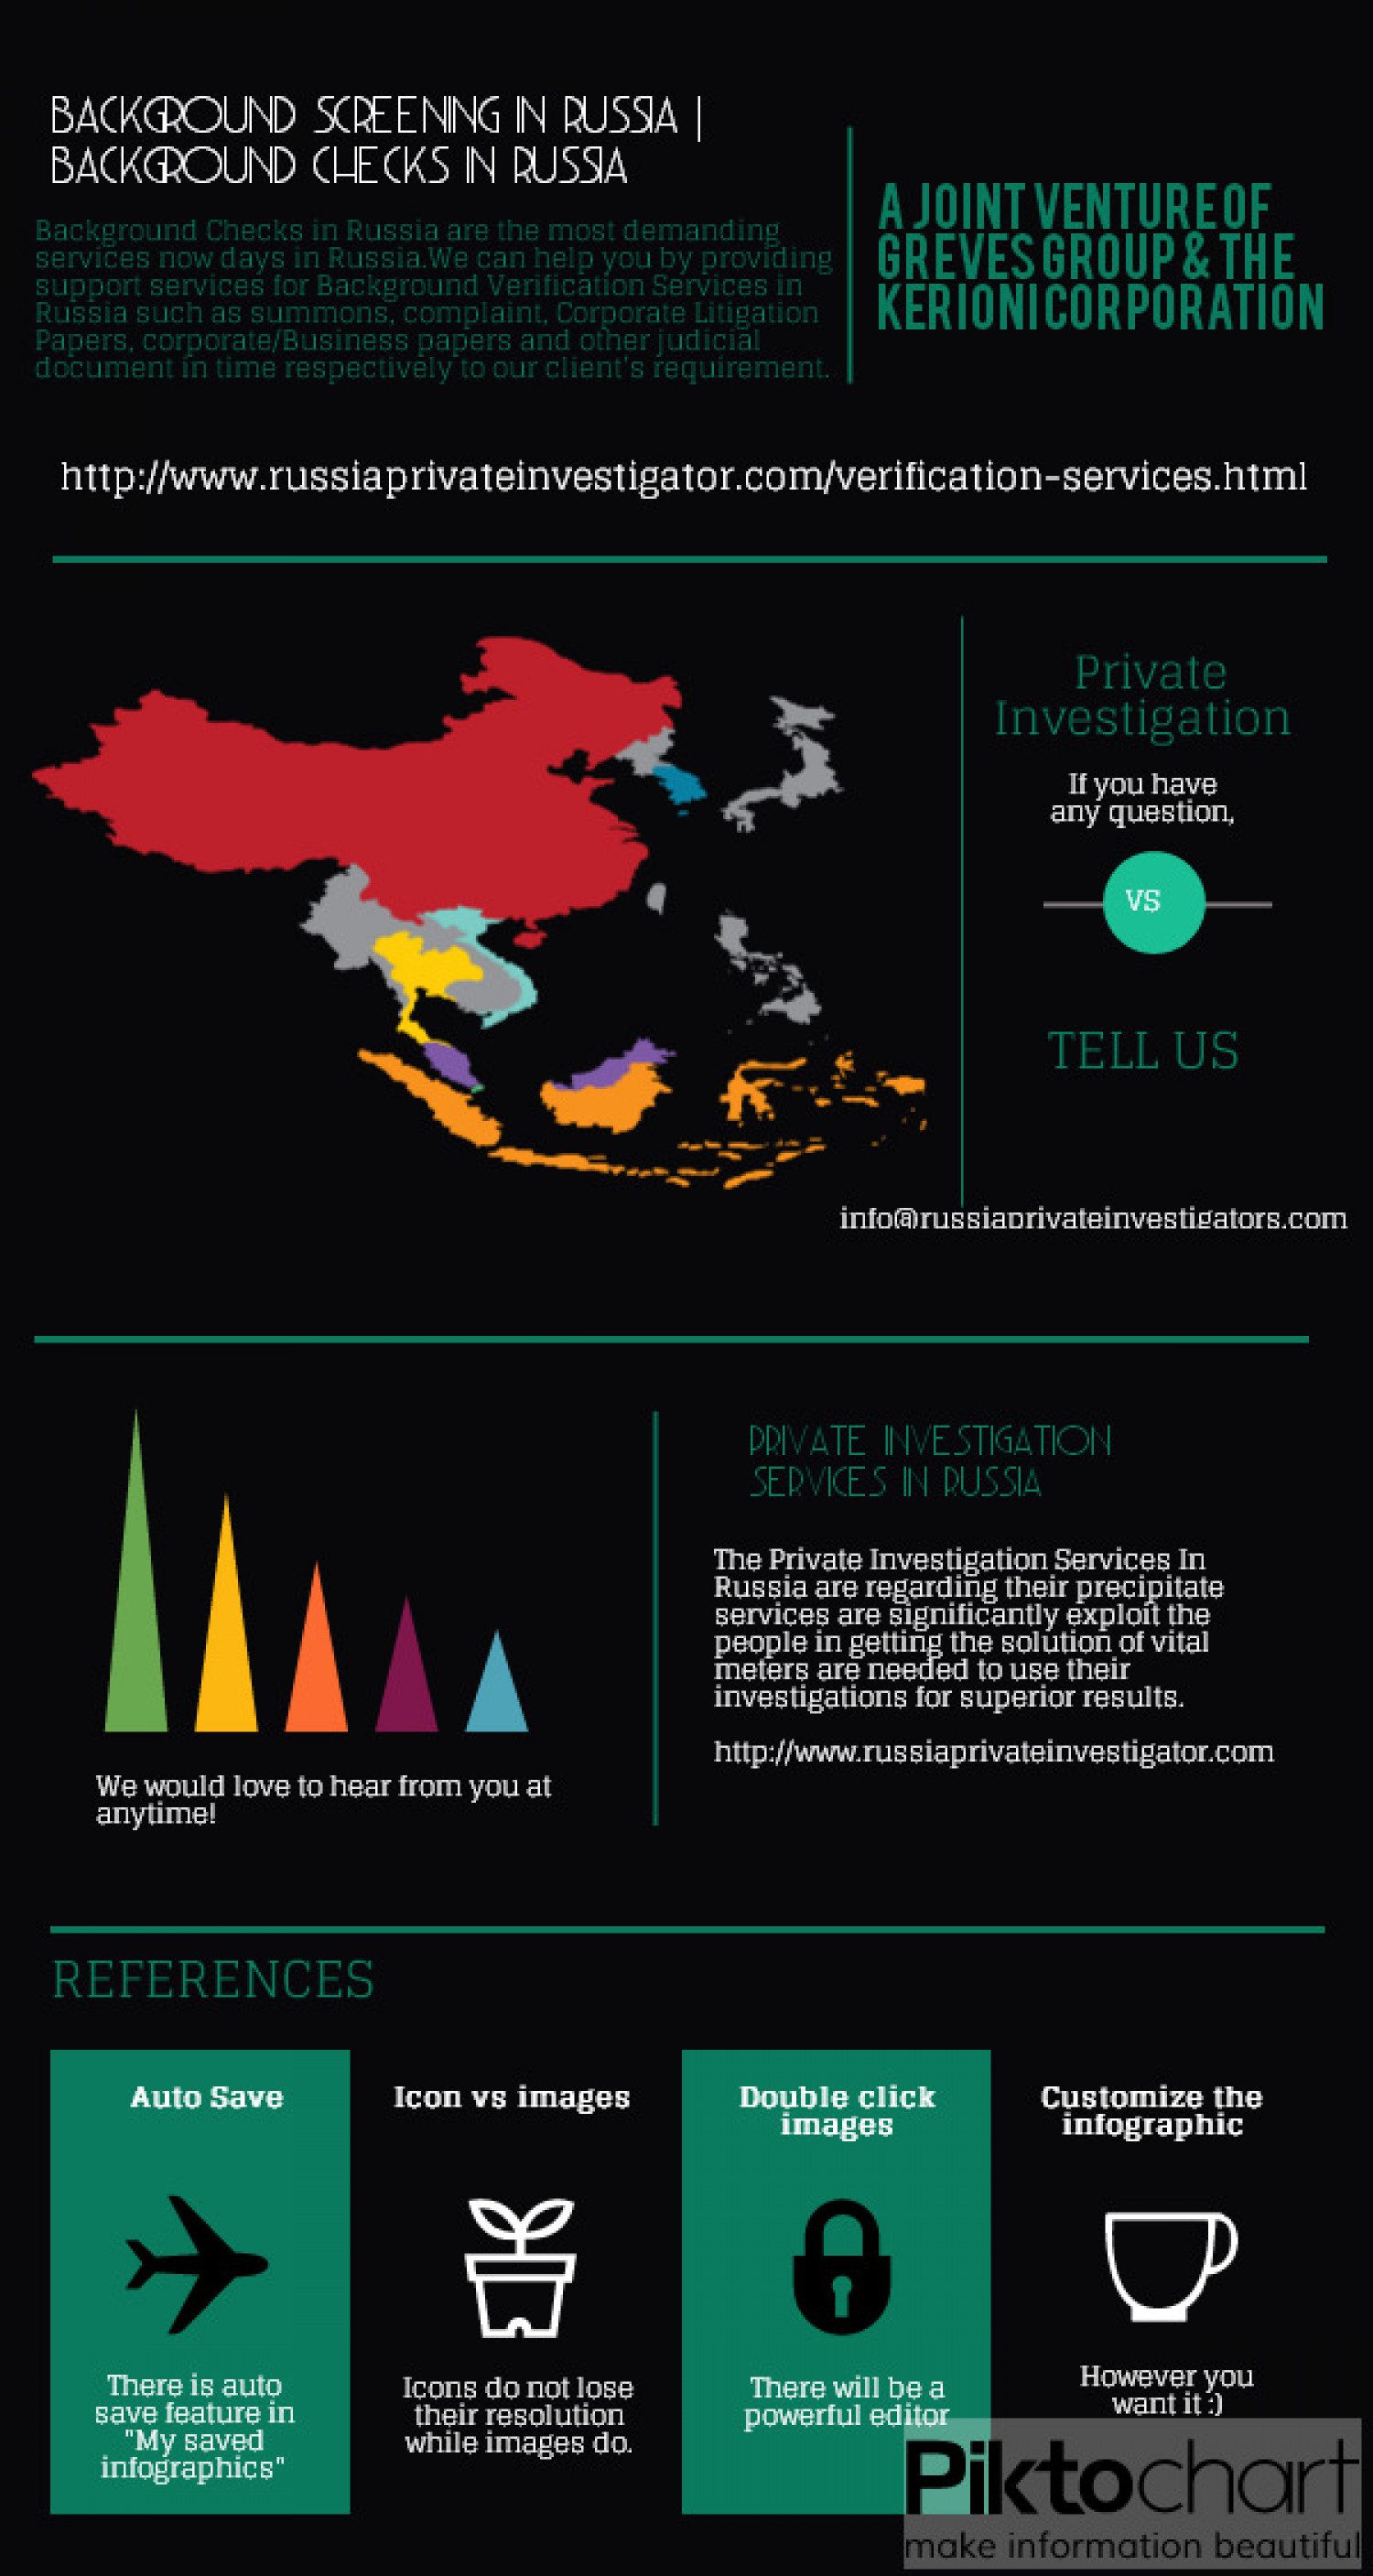 Background Checks in Russia Infographic